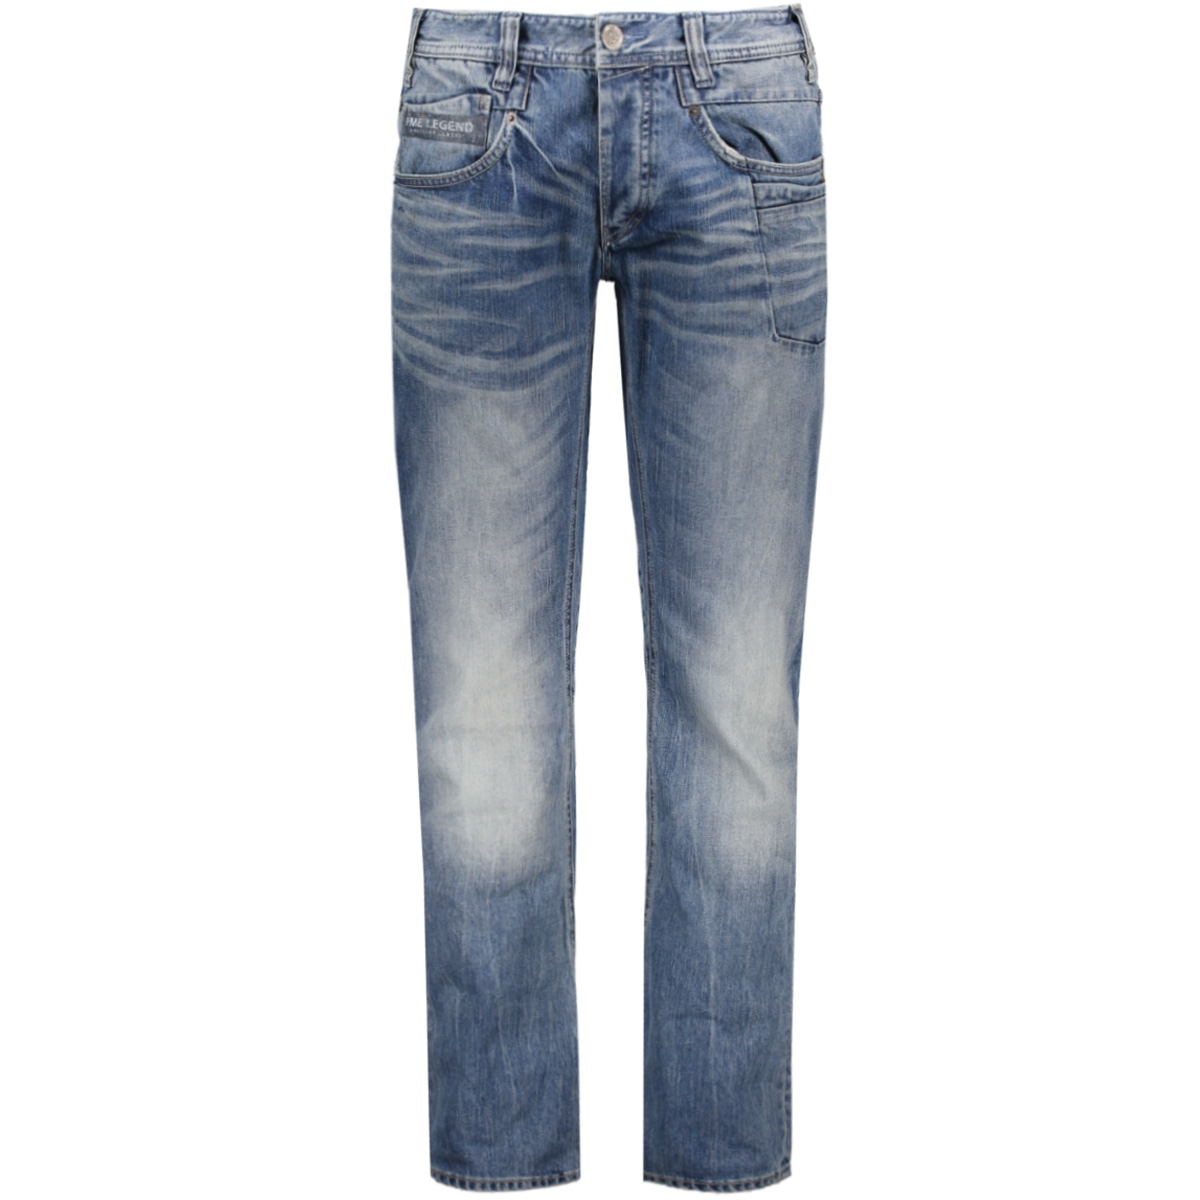 denim commander ptr980 pme legend jeans brw